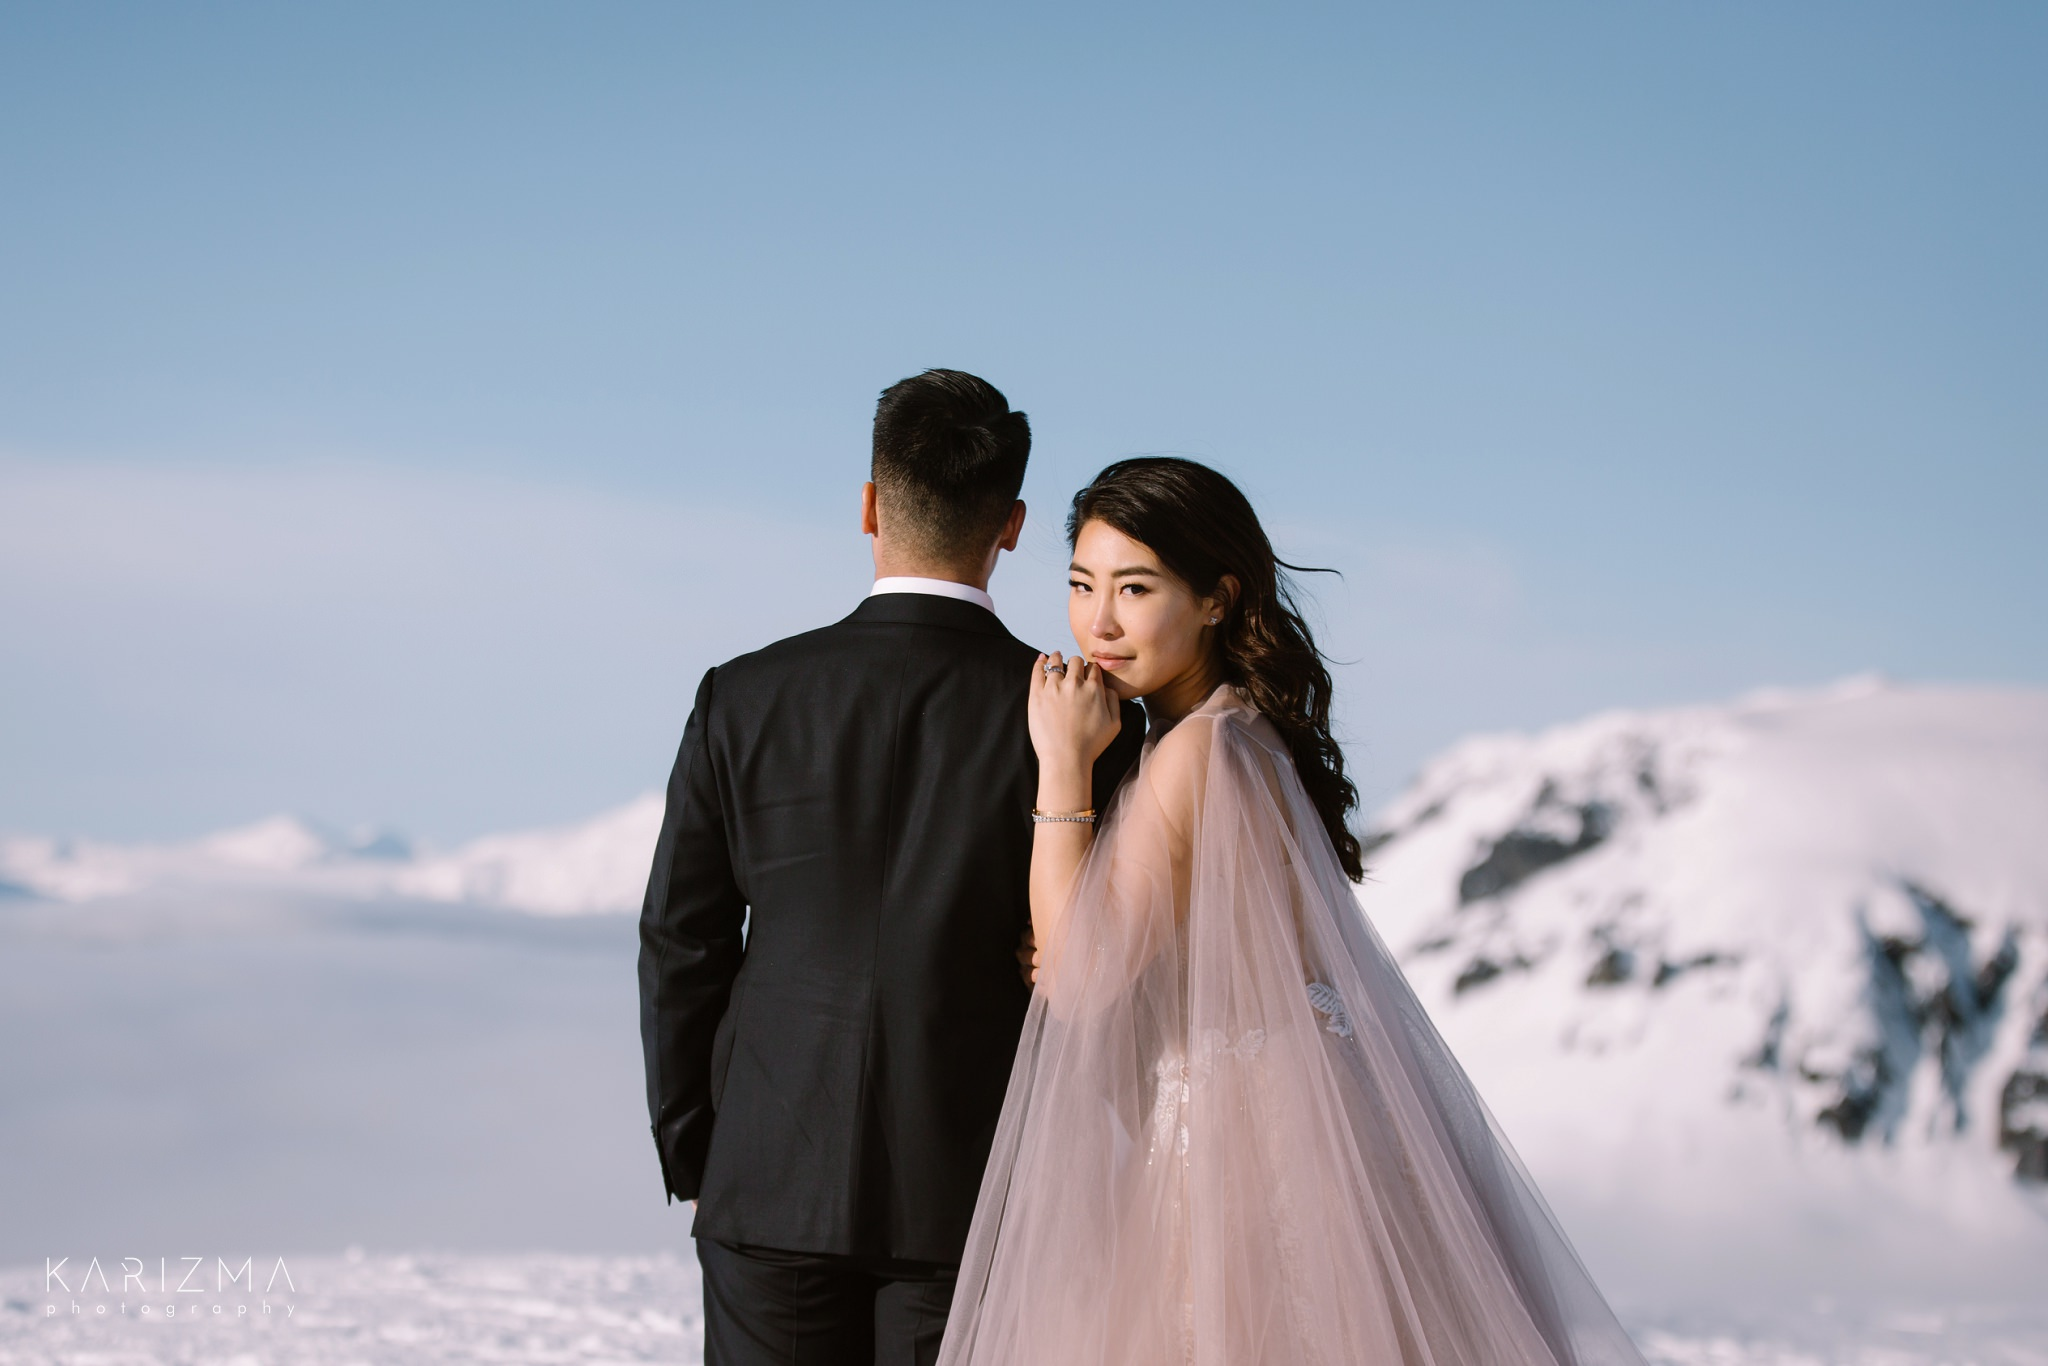 Winter close-up portrait of the bride and groom in the snowy mountains of British Columbia